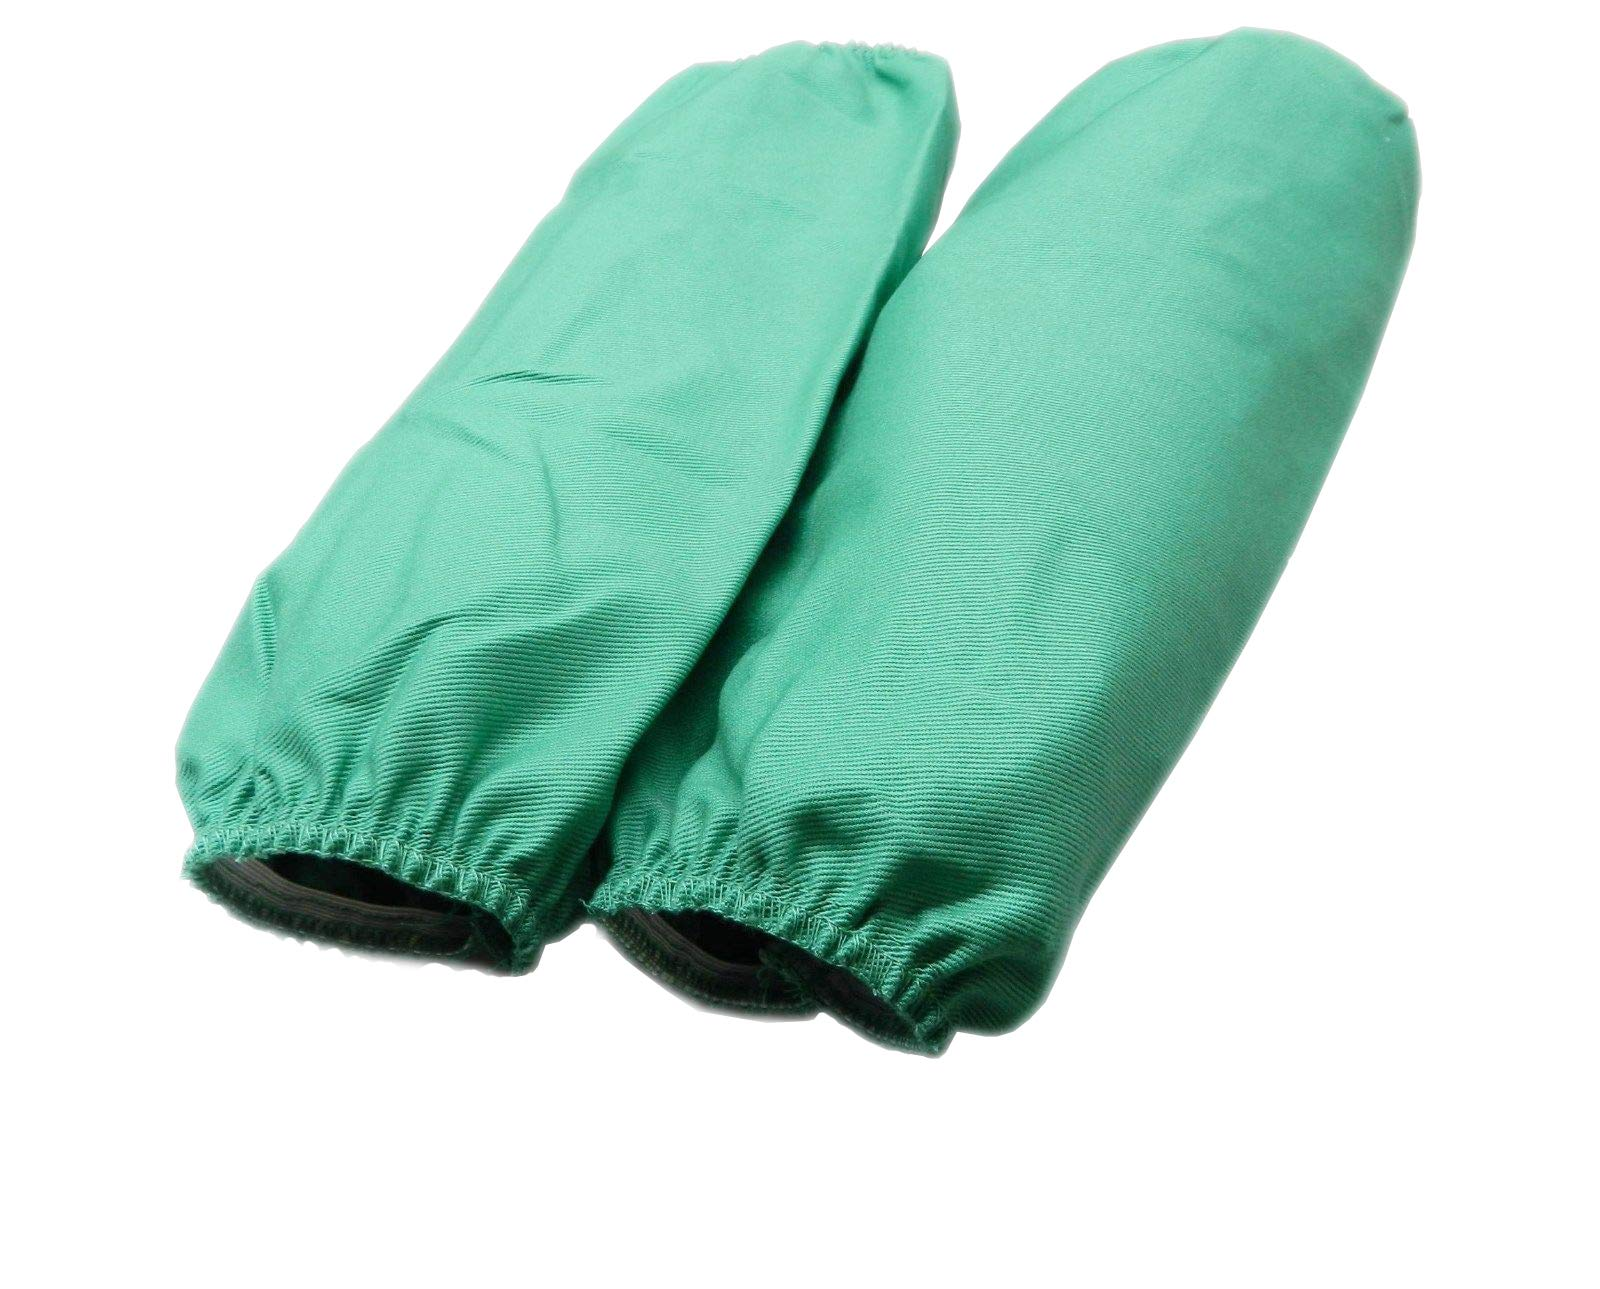 18'' Sleeves Green Flame Resistant Welding Sleeves Cotton 5 Pairs